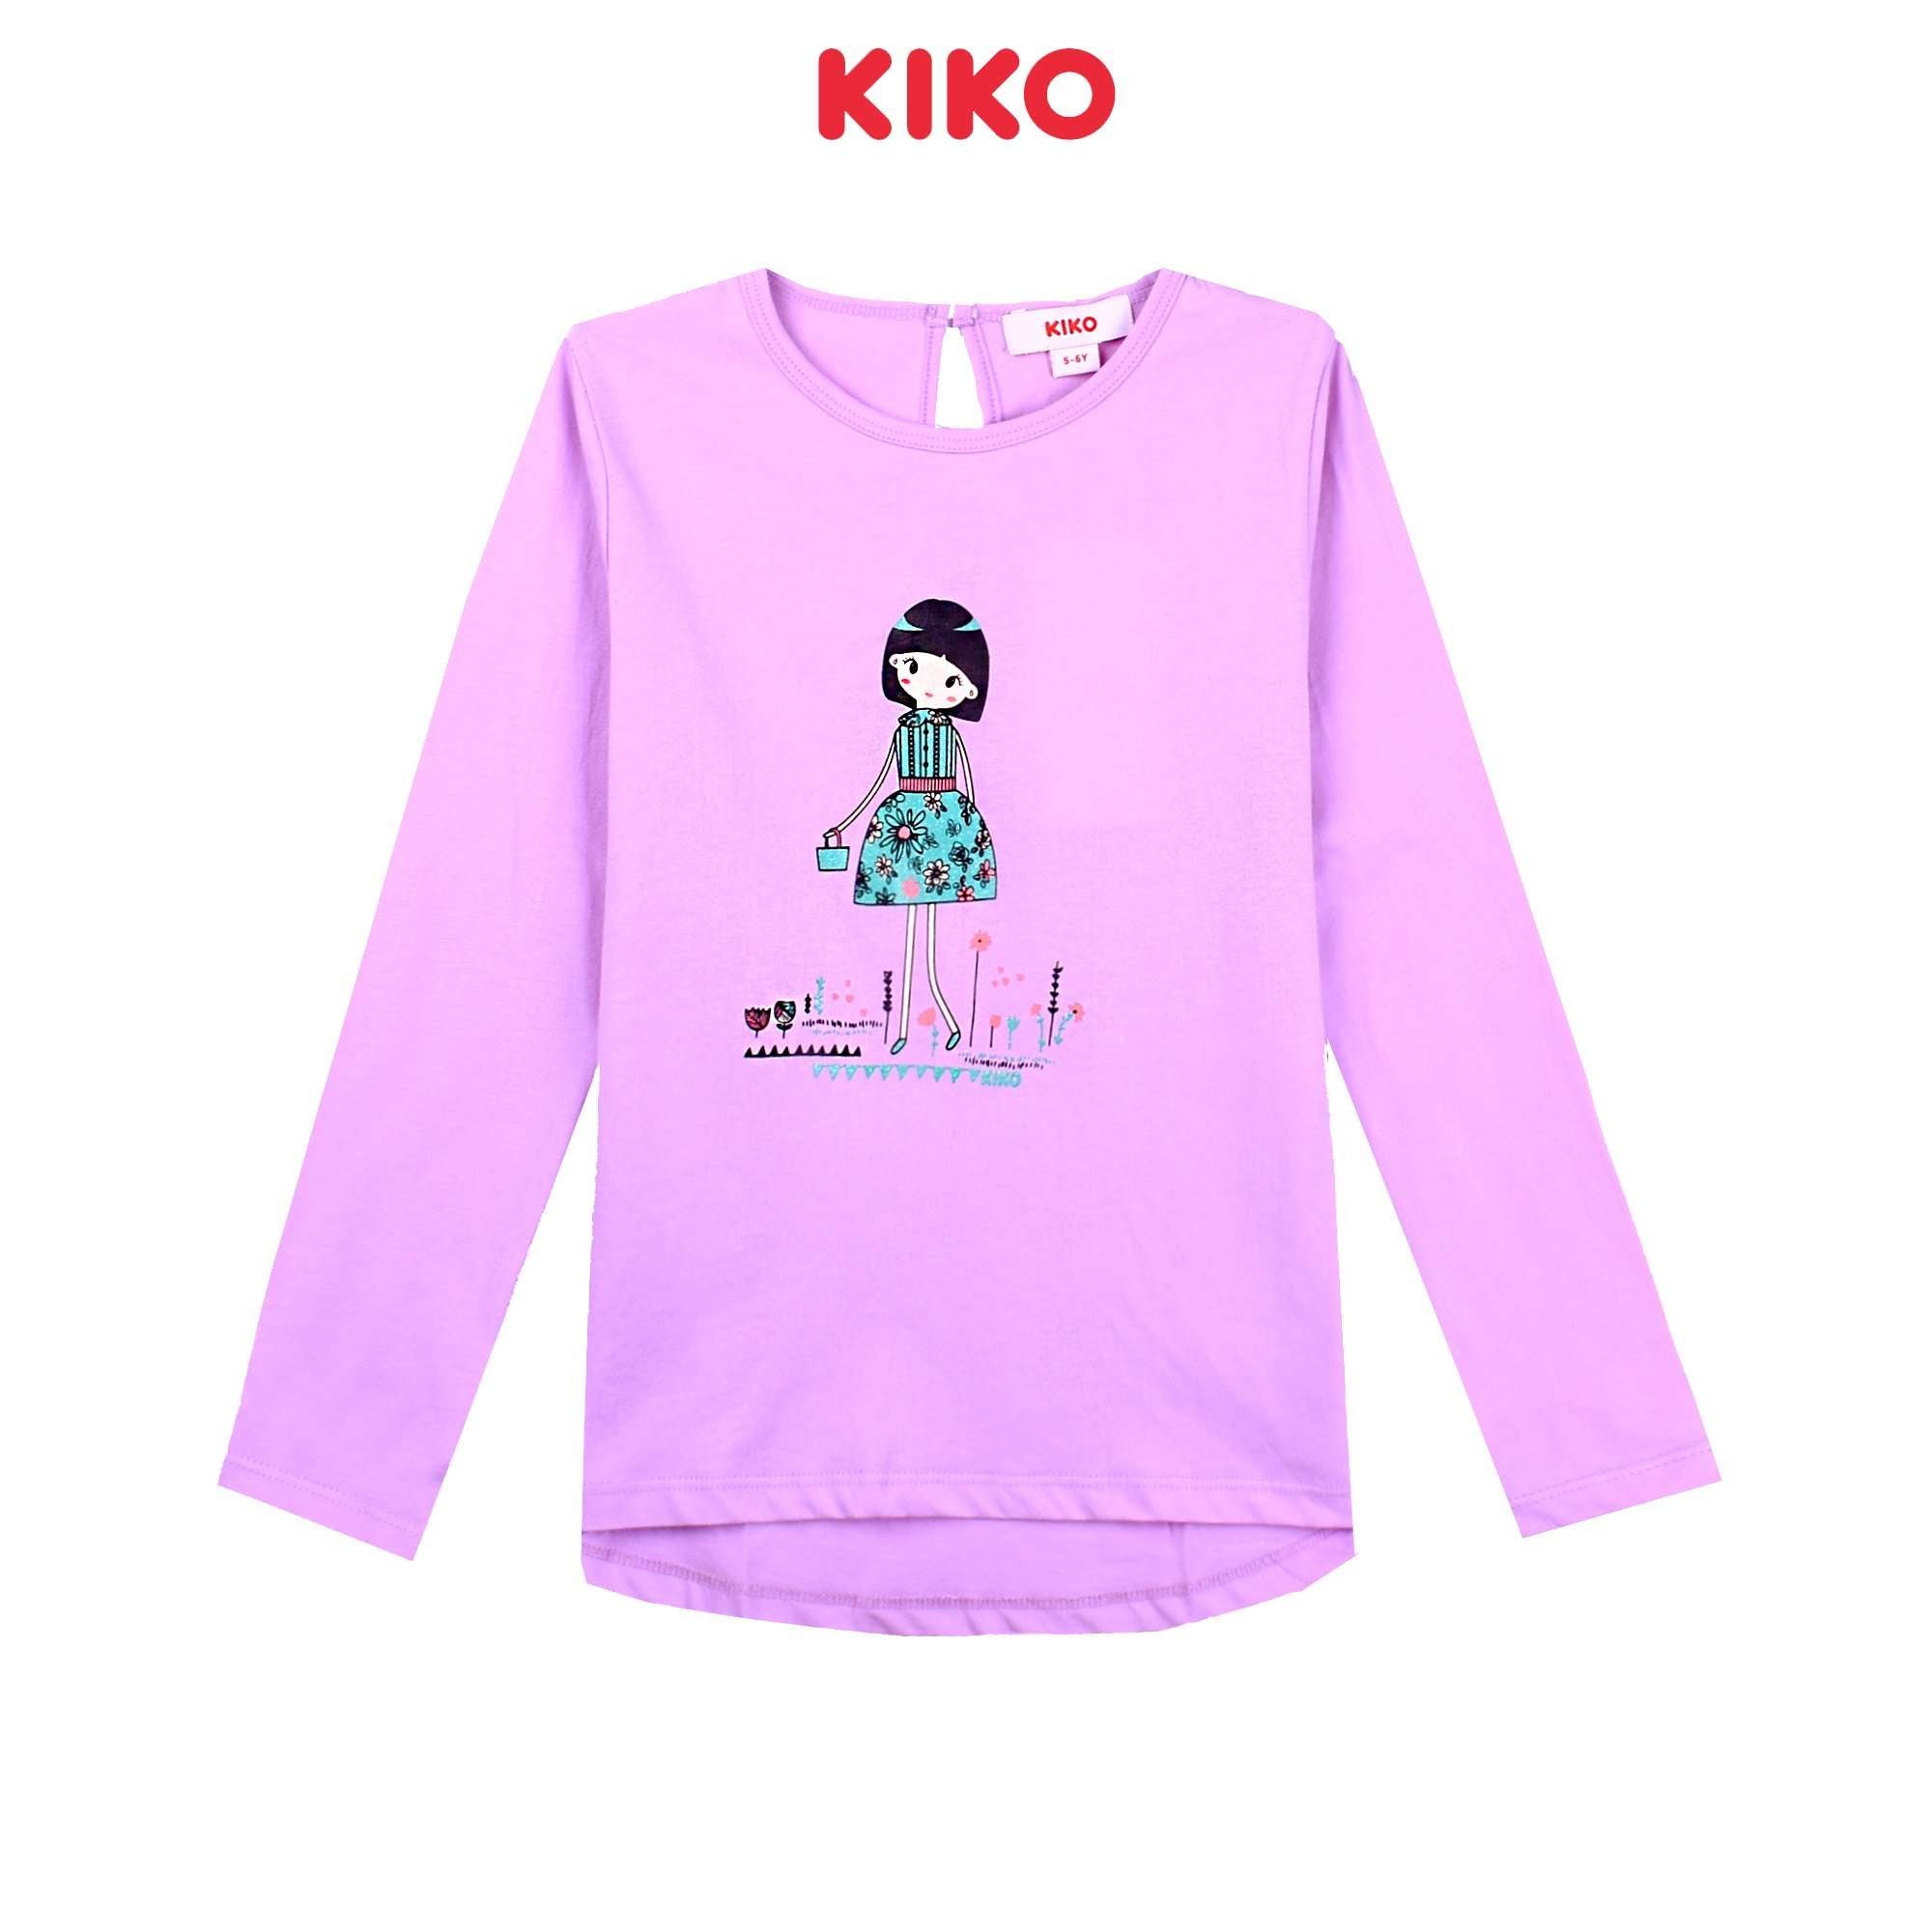 KIKO Girl Long Sleeve Tee - Purple K925103-1342-U5 : Buy KIKO online at CMG.MY